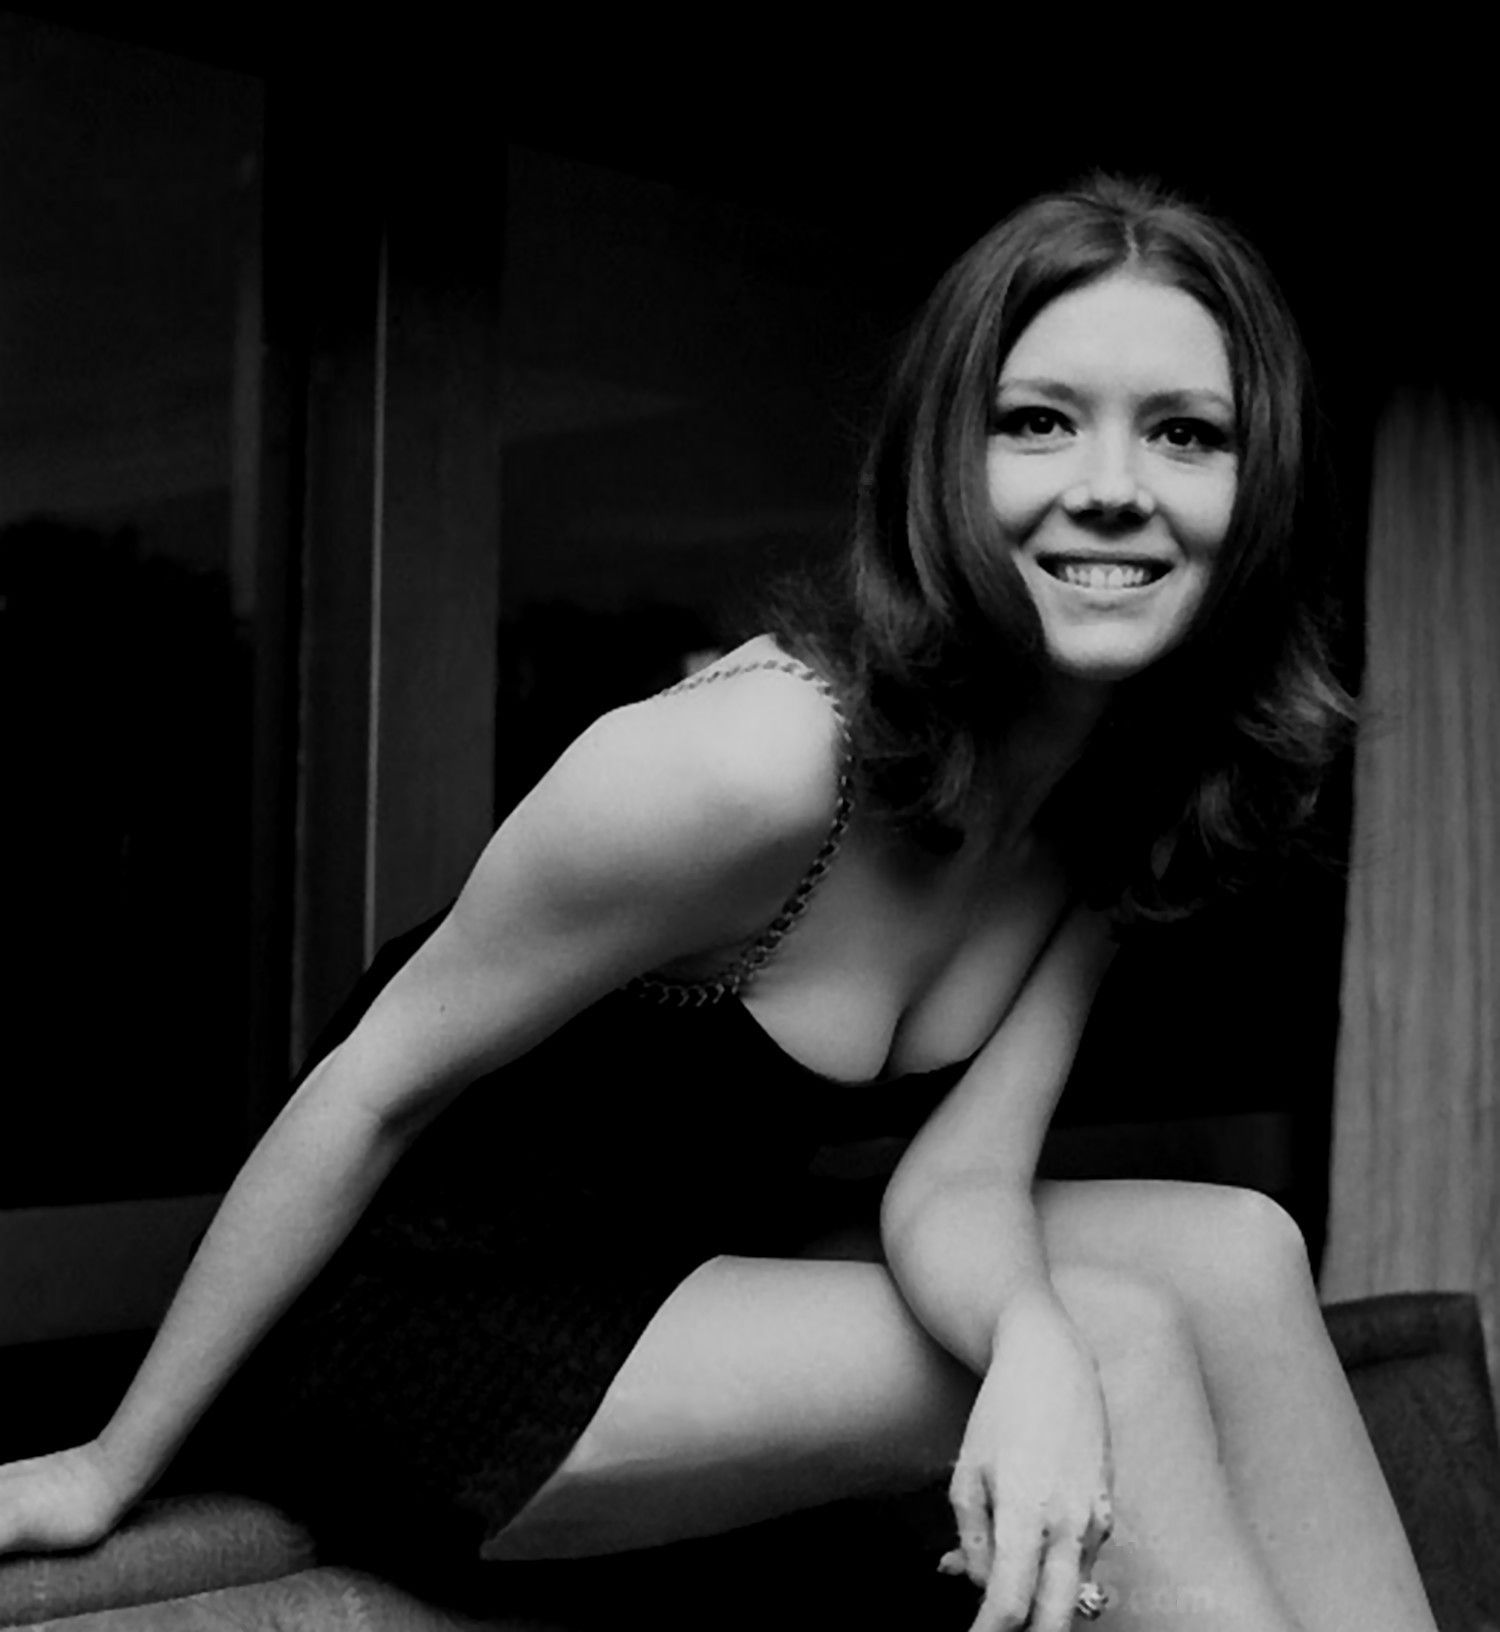 diana rigg naked pictures jpg 1200x900